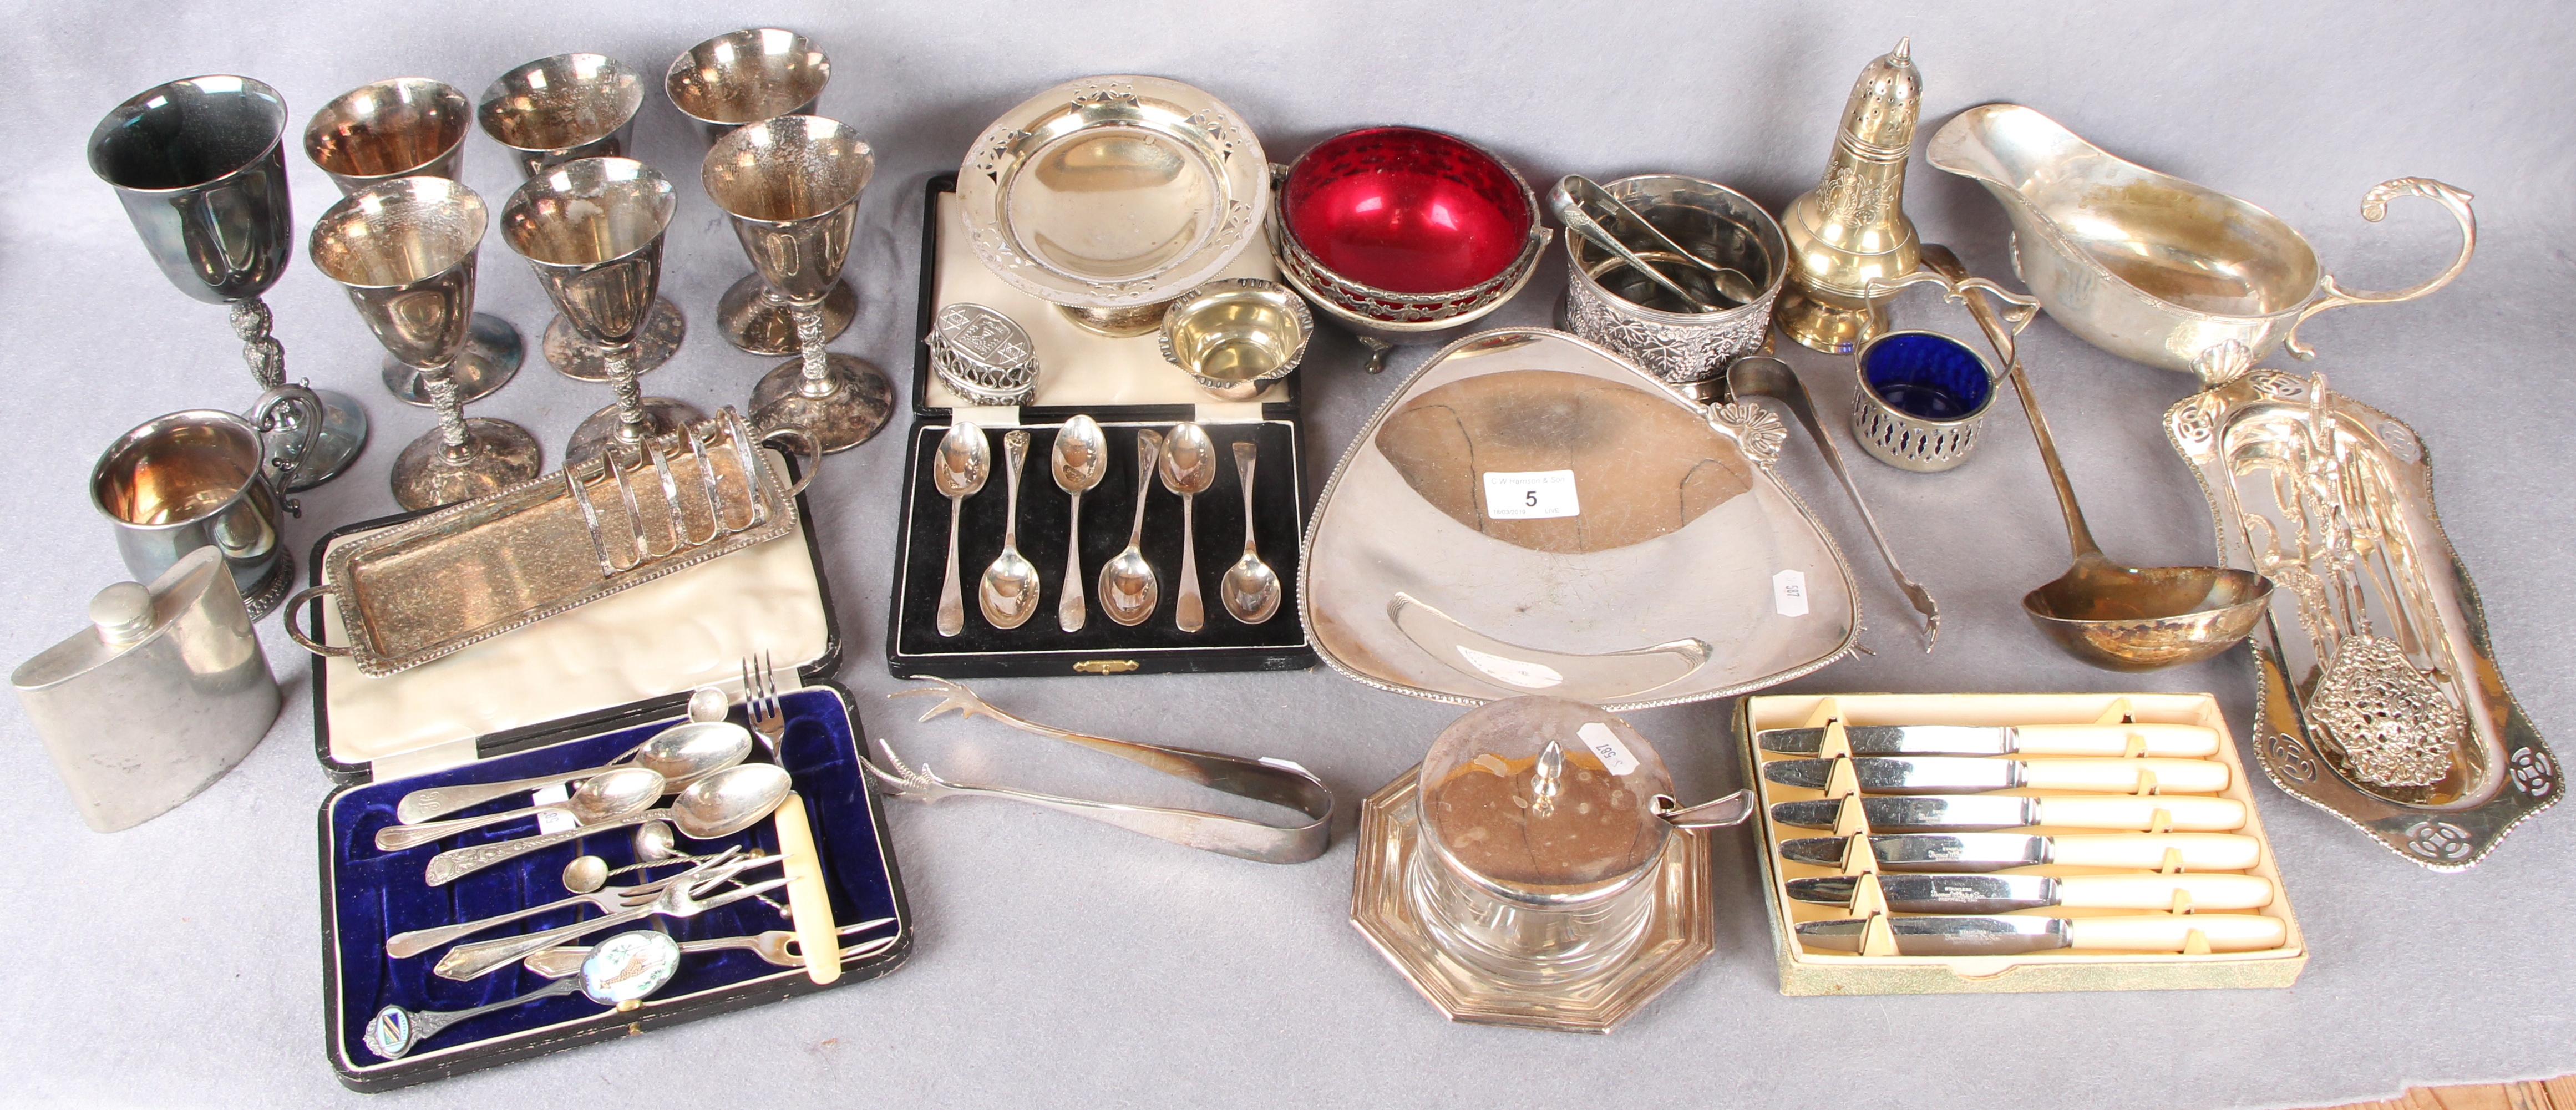 Lot 5 - A box of plated wares including wine goblets, assorted cutlery, some cased; sauce boat,